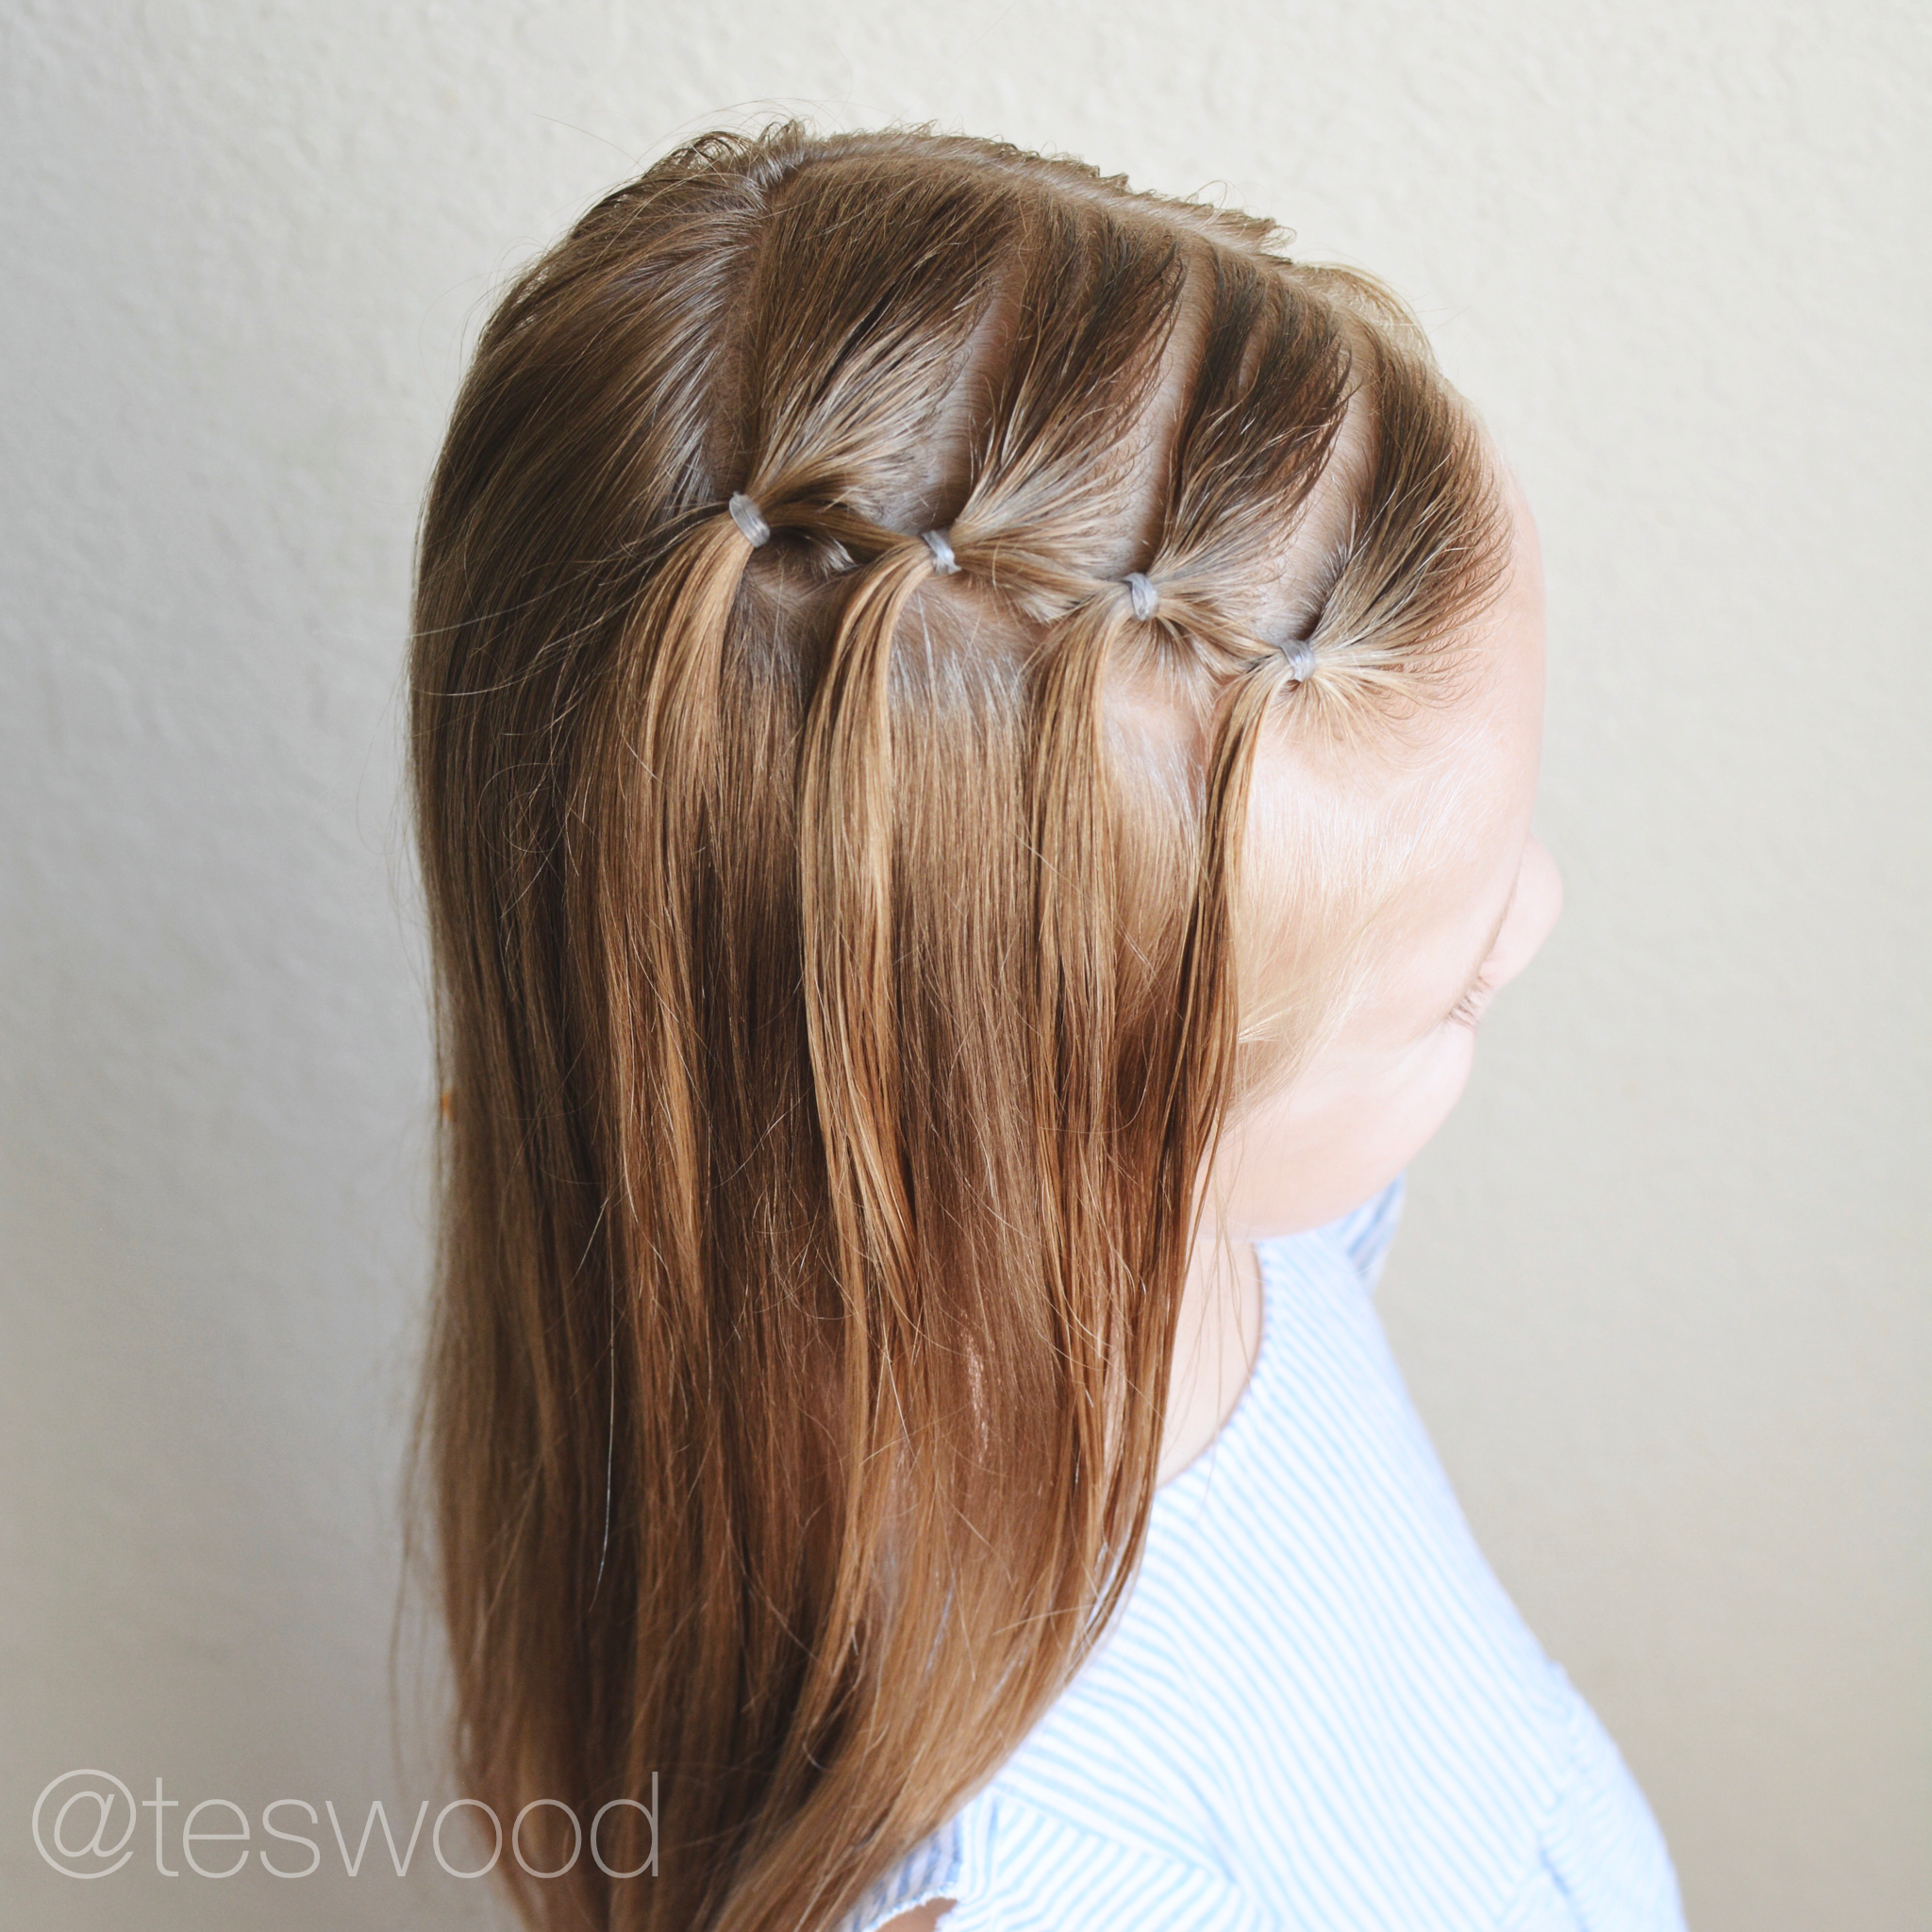 Waterfall Elastic Style Toddler Hairstyle Teswood Hair Styles Girl Hair Dos Toddler Hairstyles Girl